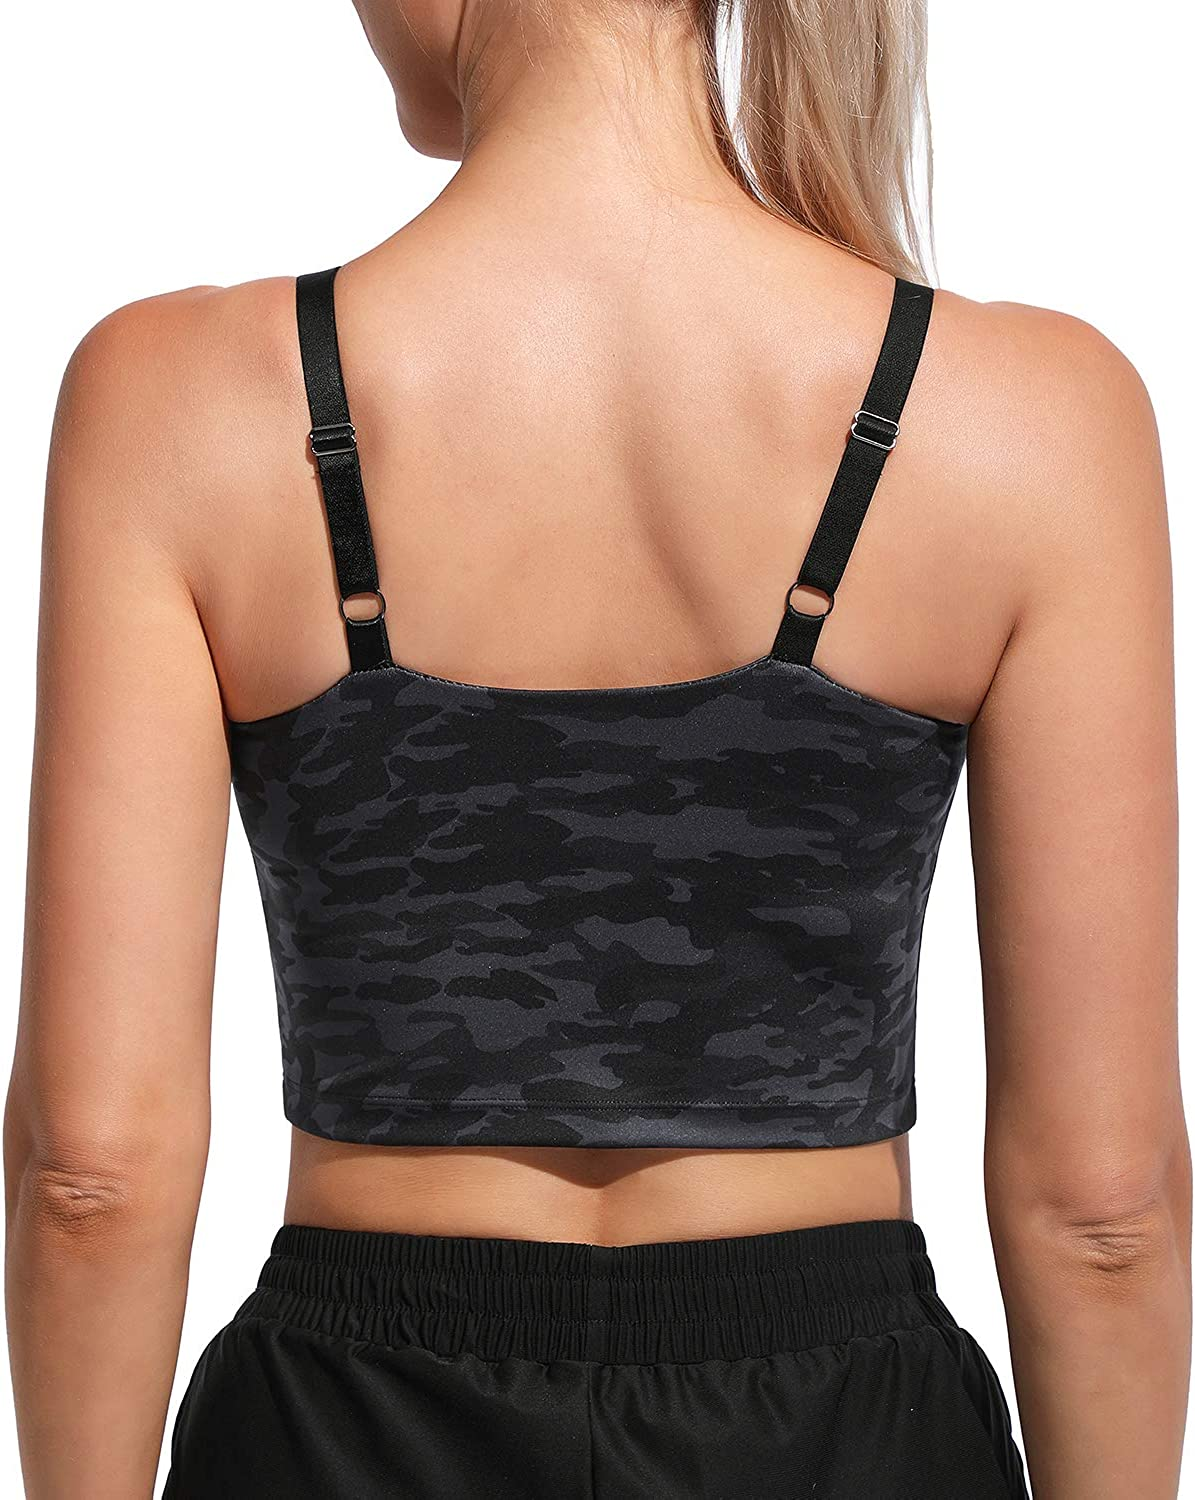 WALK FIELD Women Adjustable Sports Bras - Padded Cami Crop Tops for Workout Yoga Fitness